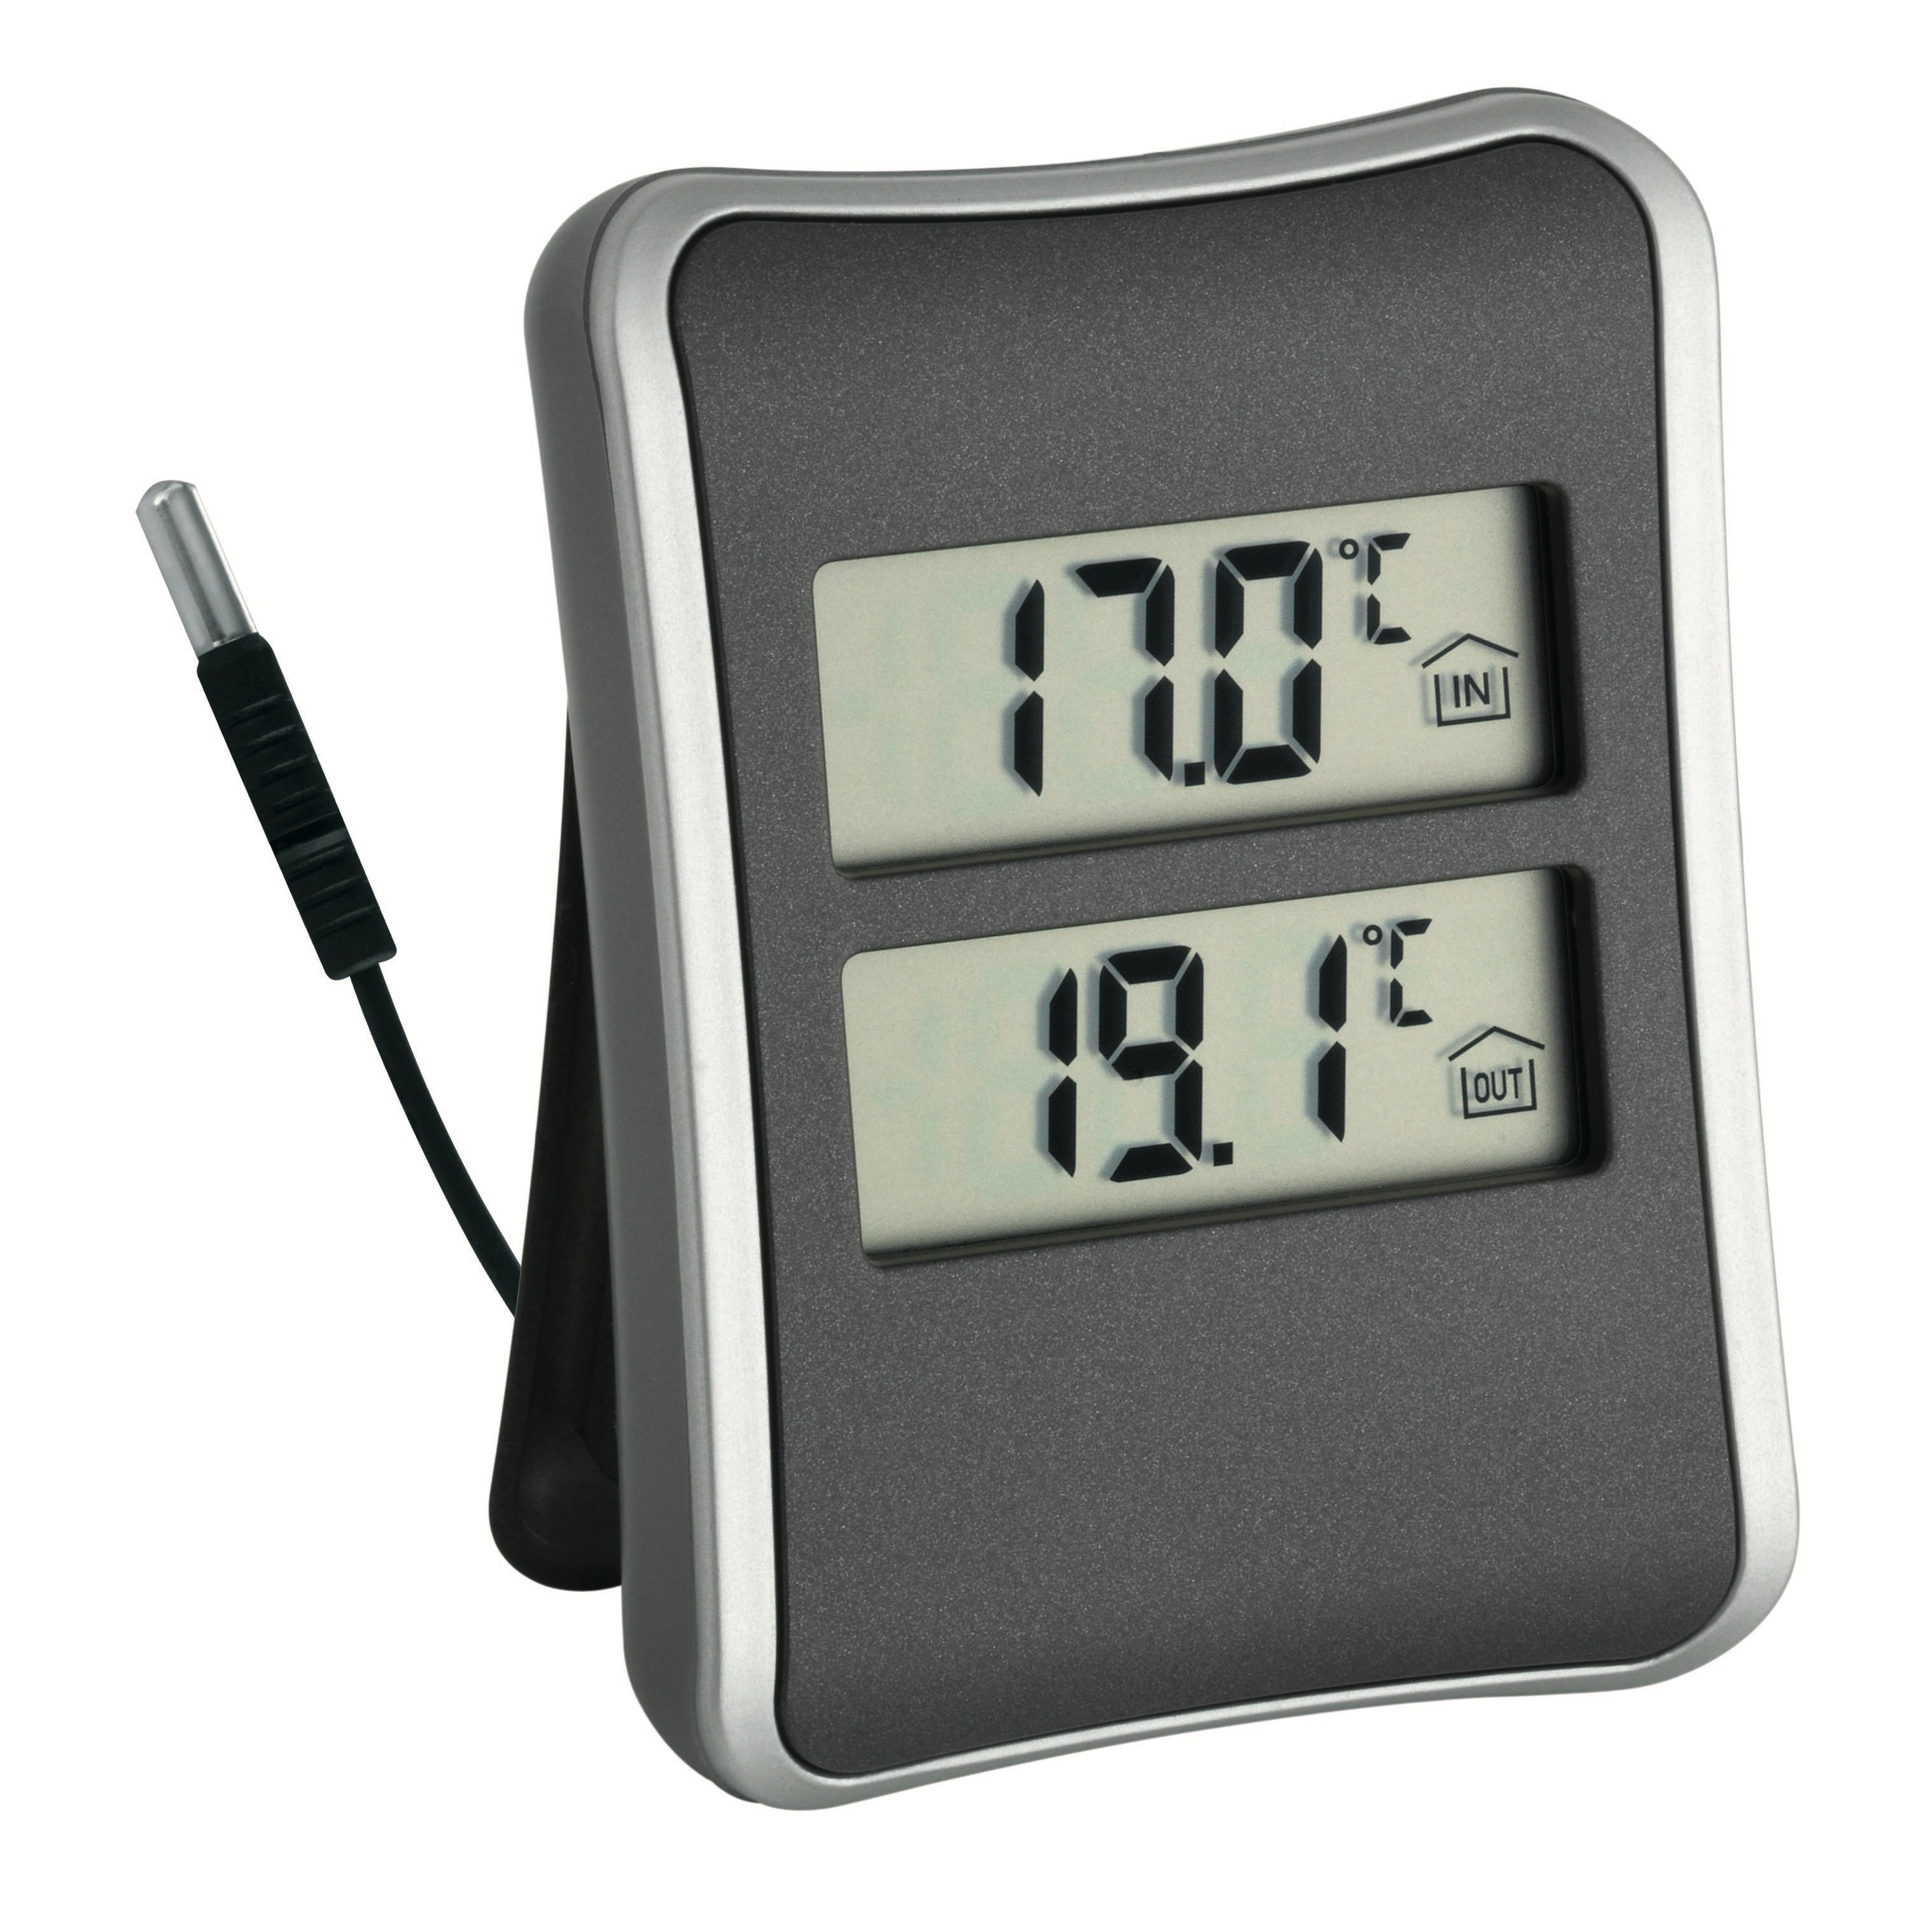 tfa dostmann digitales innen aussen thermometer. Black Bedroom Furniture Sets. Home Design Ideas